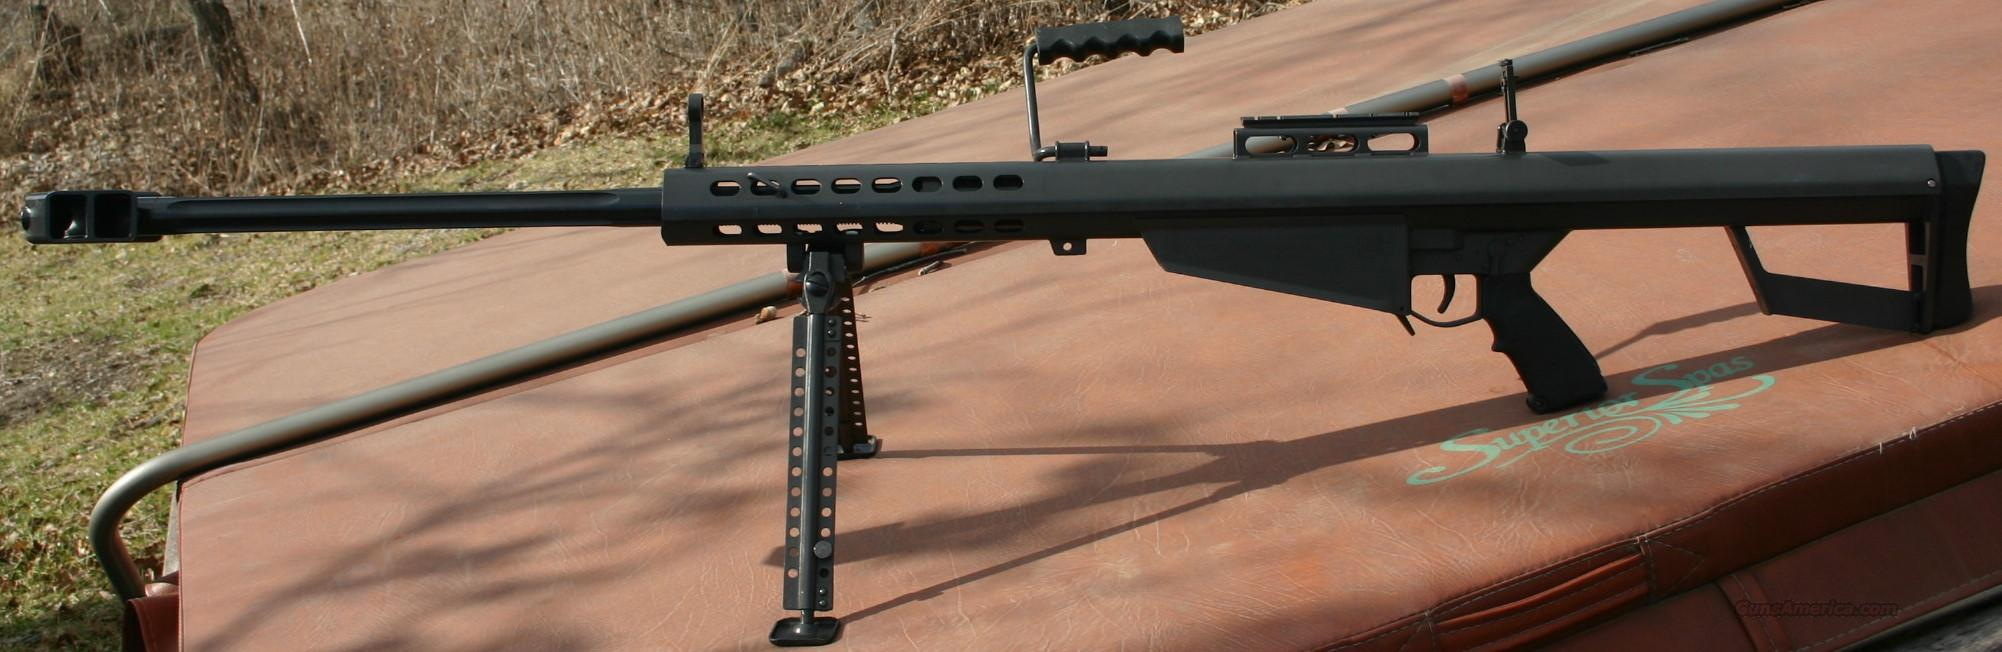 82A1  SEMI AUTO 50 BMG  Guns > Rifles > Barrett Rifles